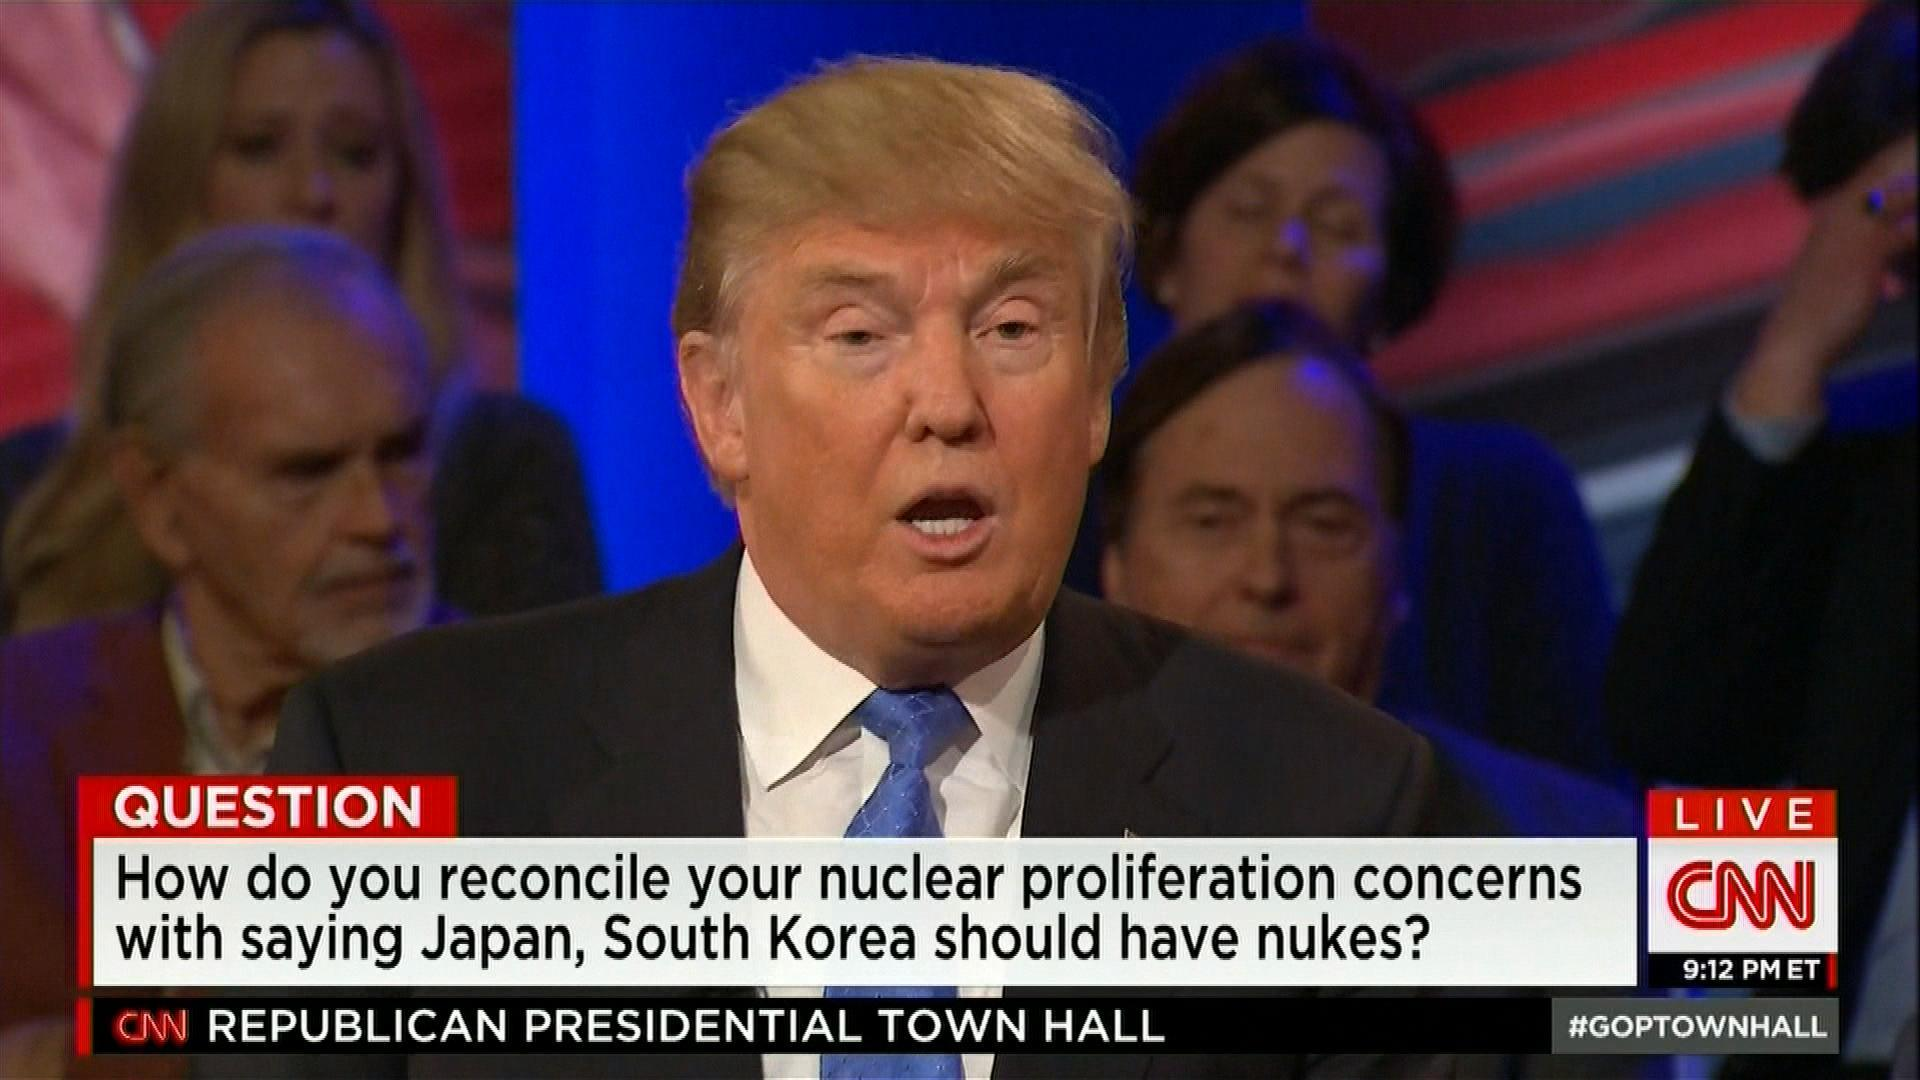 Trump on Changing Nuclear Policy with Japan